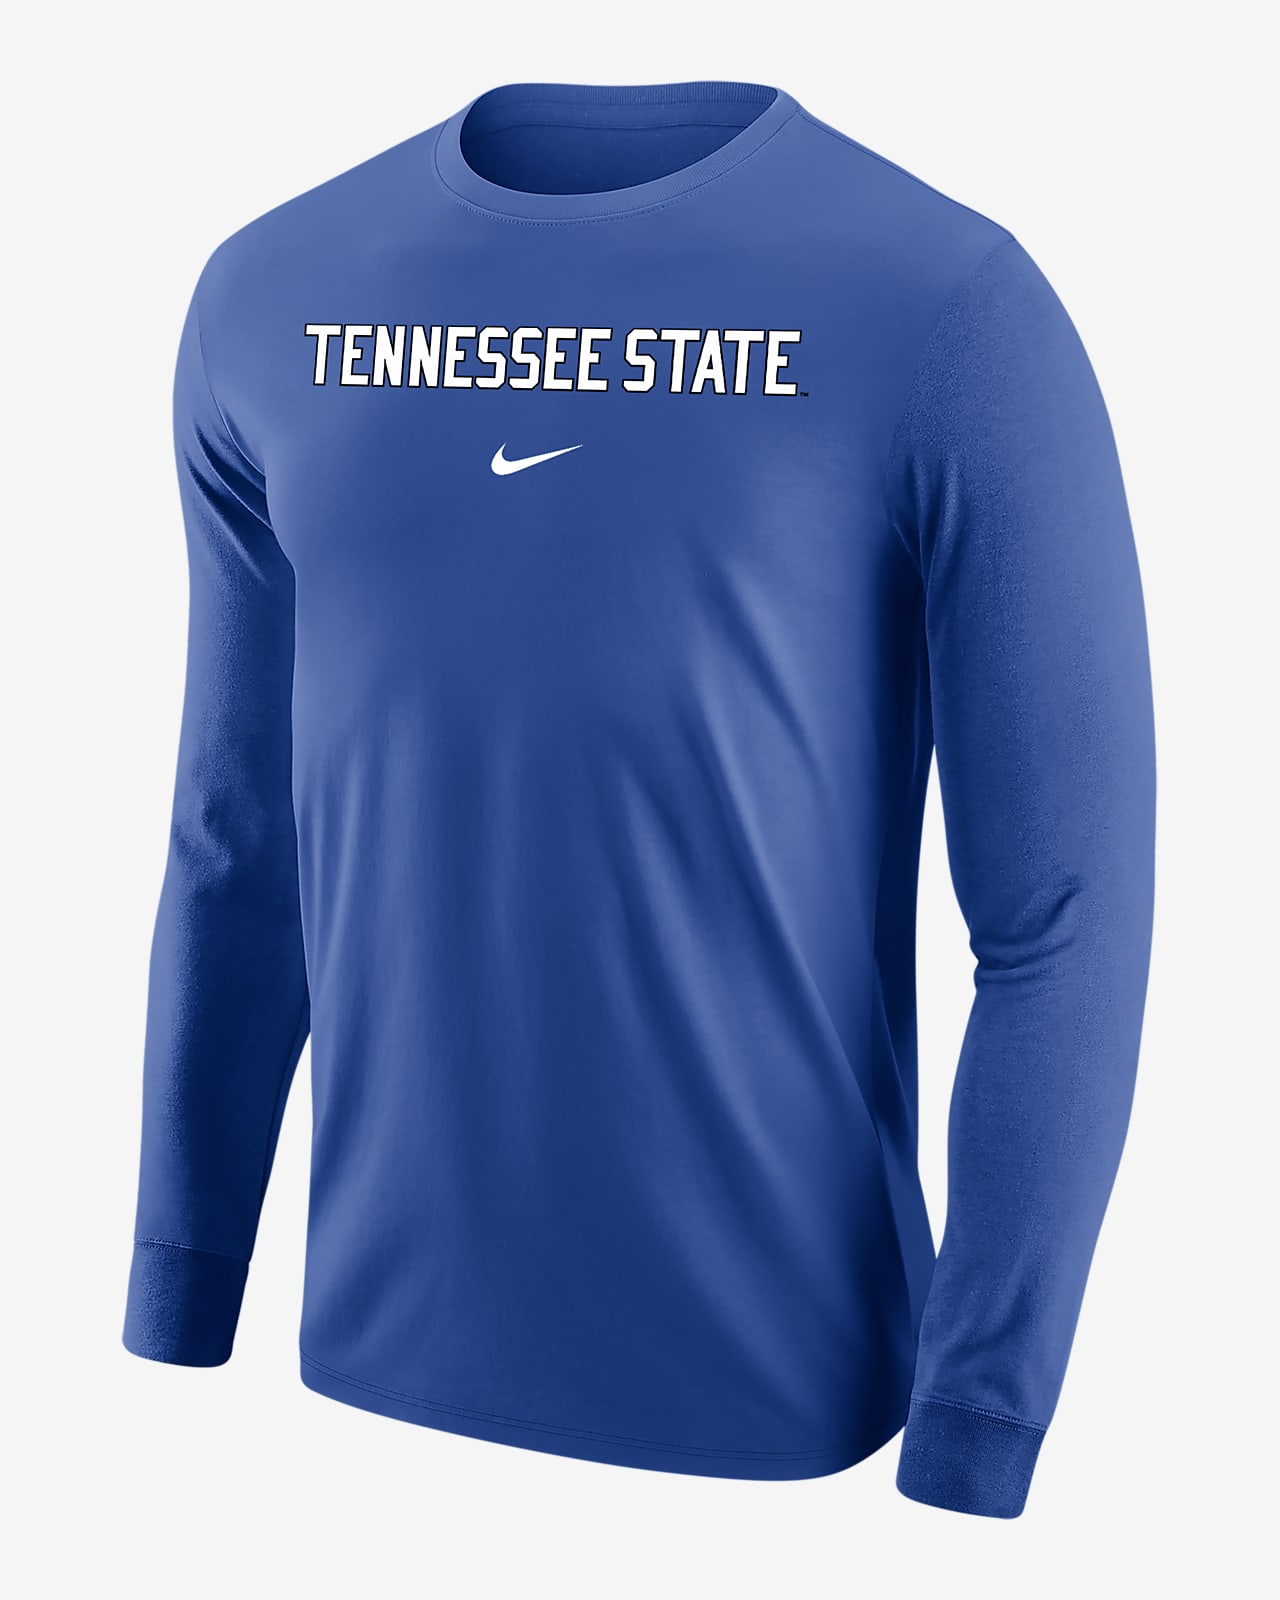 Nike College (Tennessee State) Men's Long-Sleeve T-Shirt